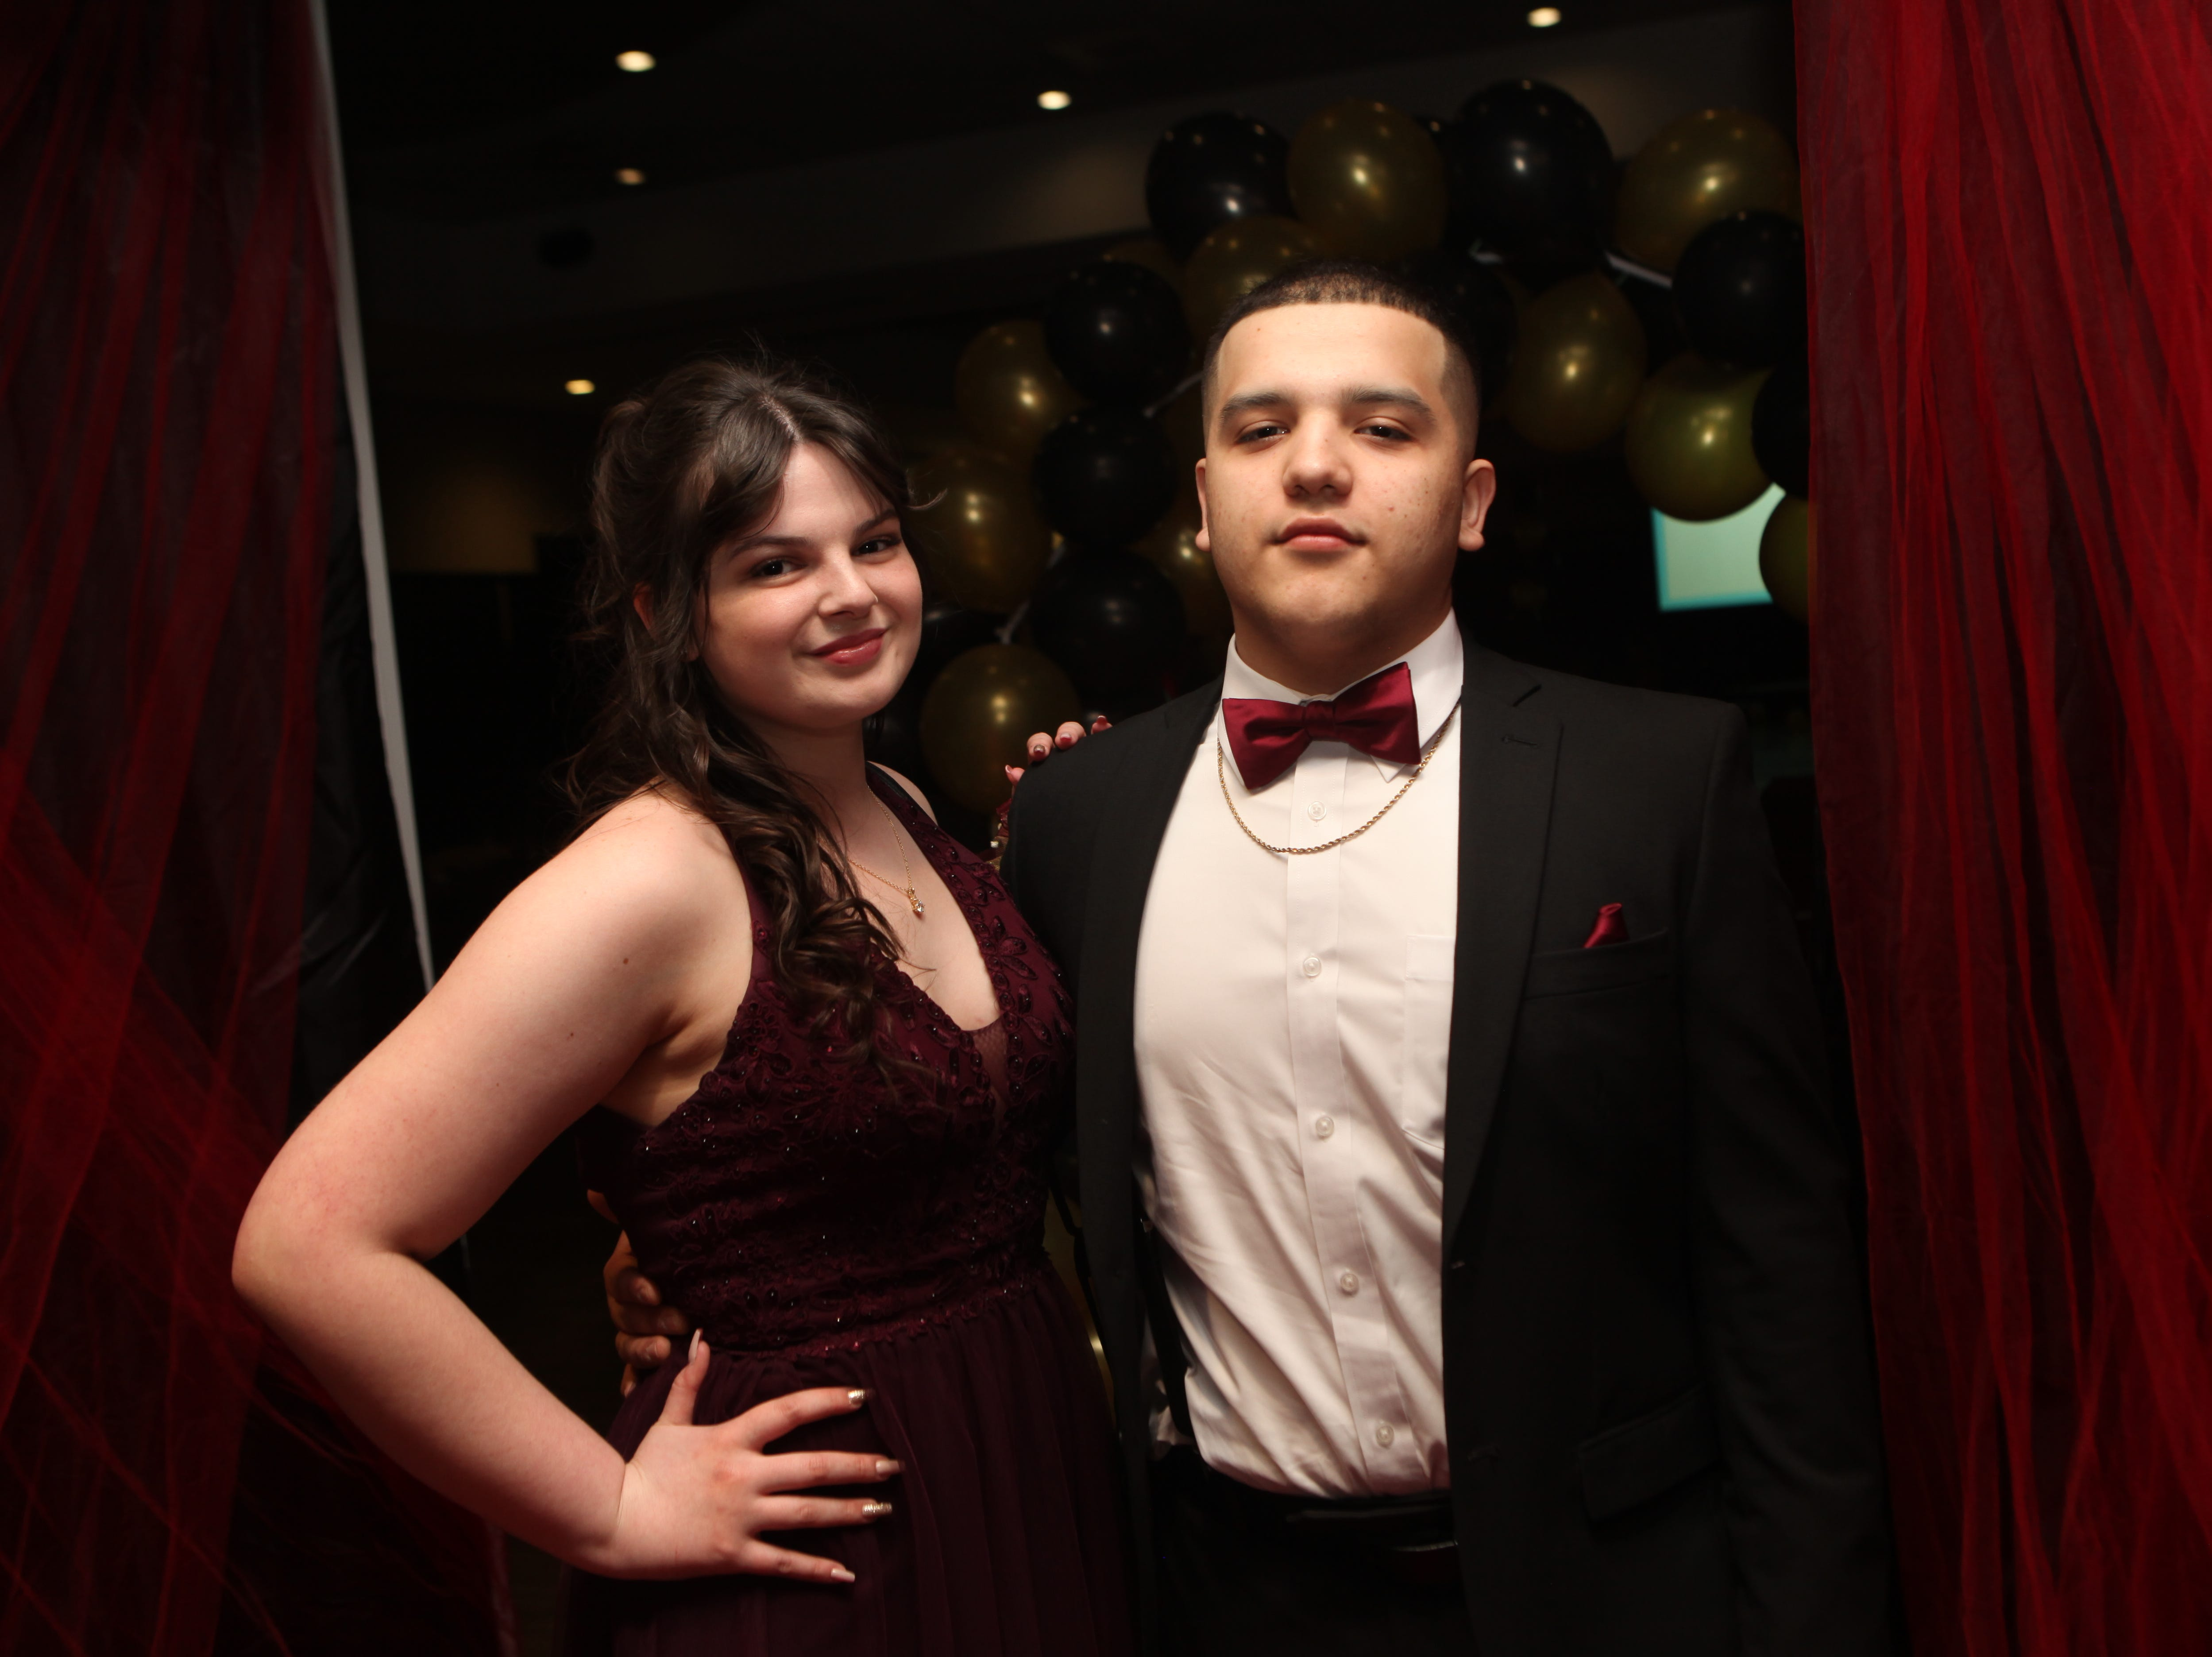 Cassandra Patterson and Julio Chavez at the Middle College 2019 prom at the APSU Ballroom on Friday, April 26, 2019.